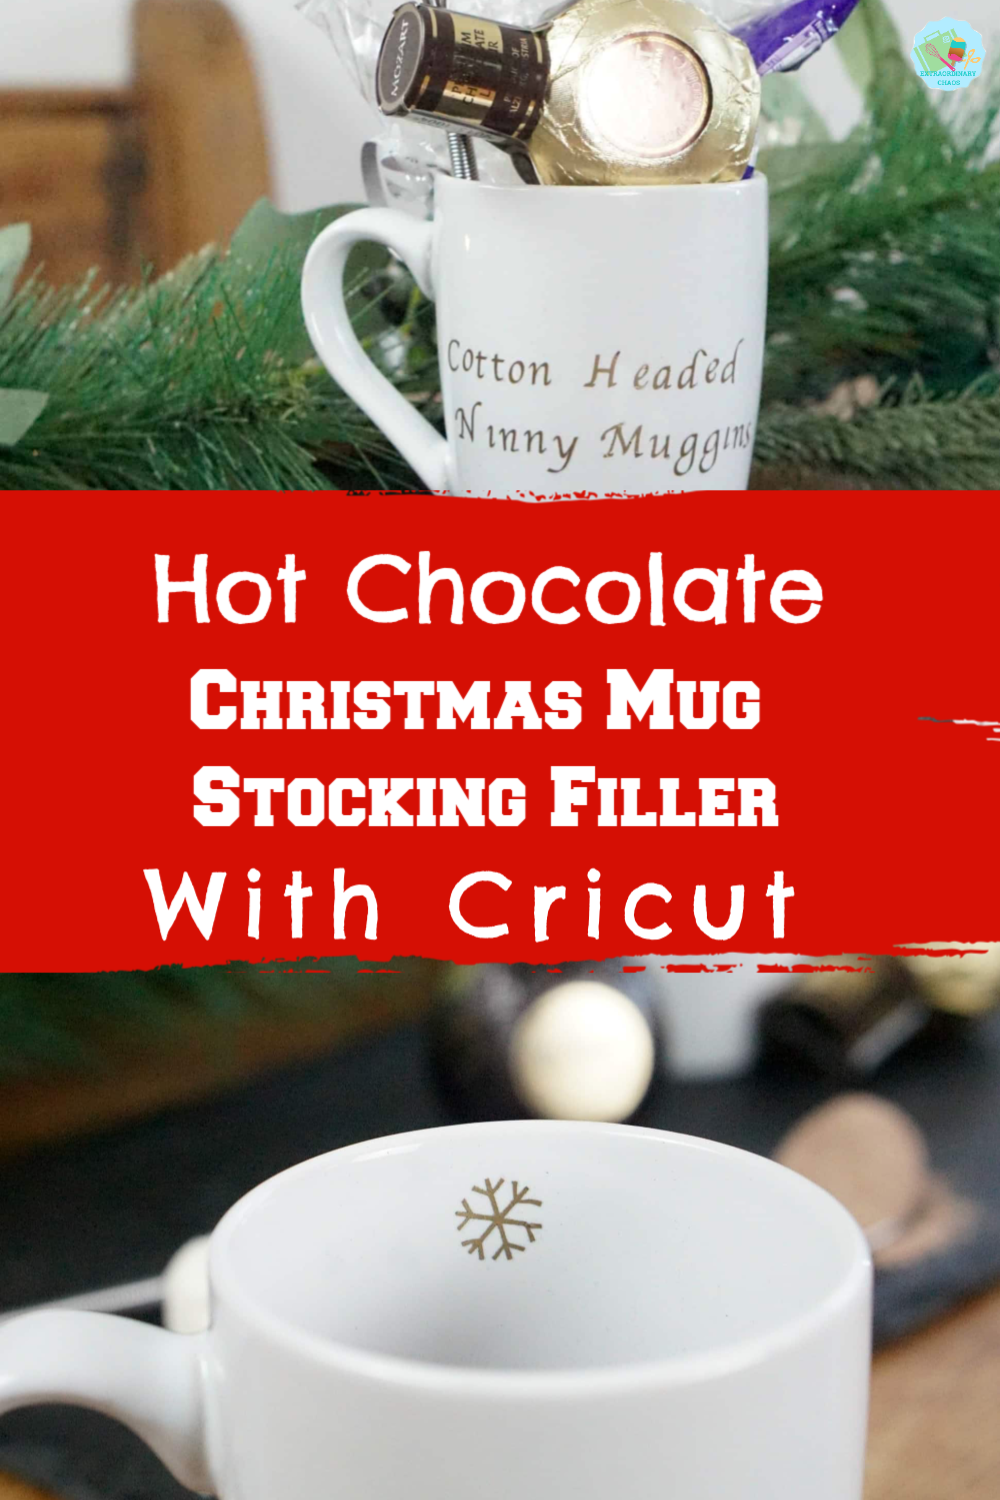 A Personalised Hot Chocolate Mug Gift Idea Extraordinary Chaos